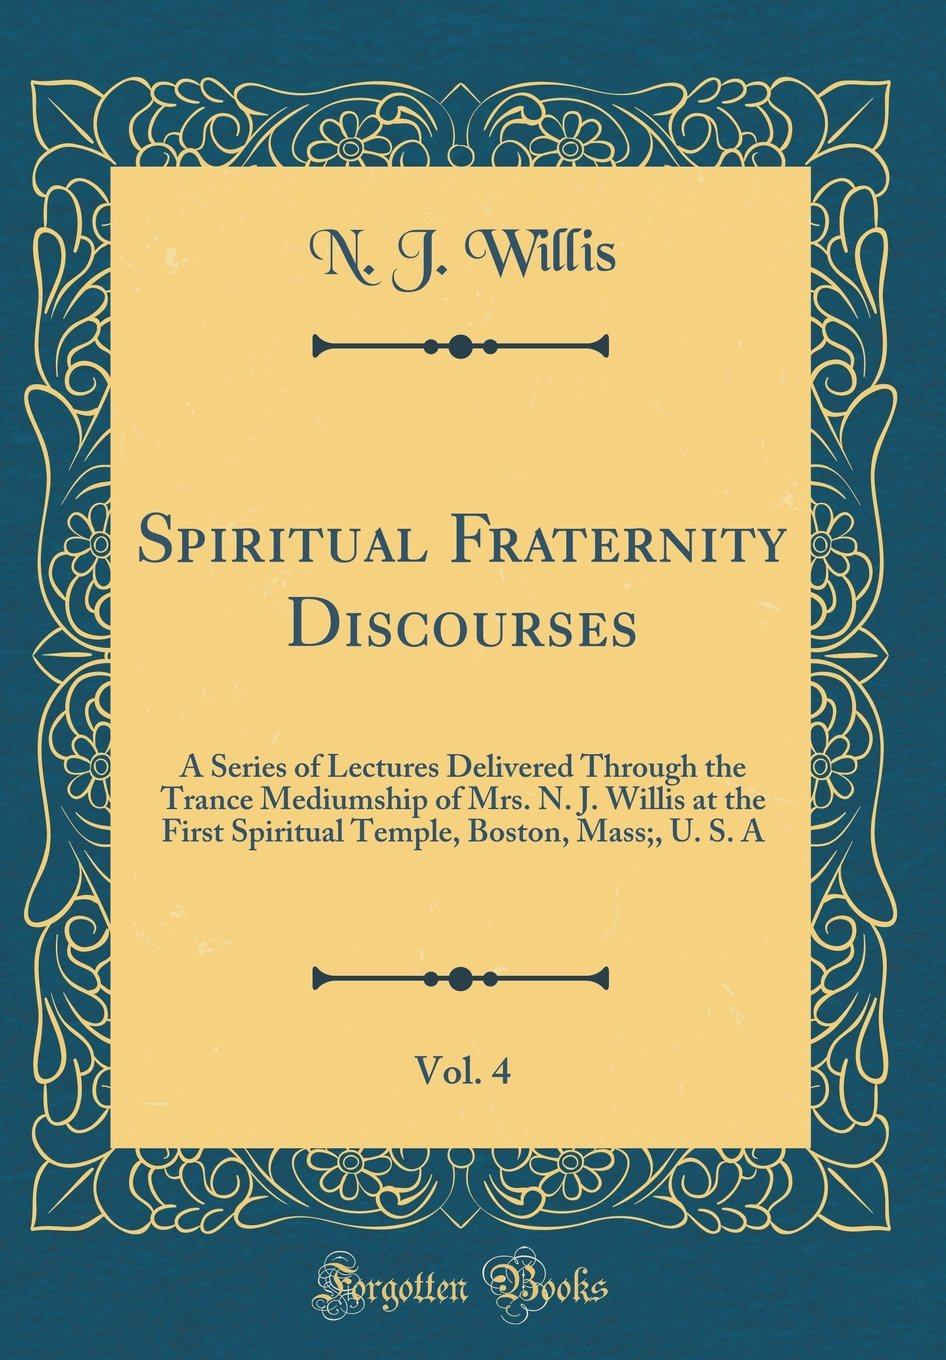 Spiritual Fraternity Discourses, Vol. 4: A Series of Lectures Delivered Through the Trance Mediumship of Mrs. N. J. Willis at the First Spiritual Temple, Boston, Mass;, U. S. A (Classic Reprint) PDF